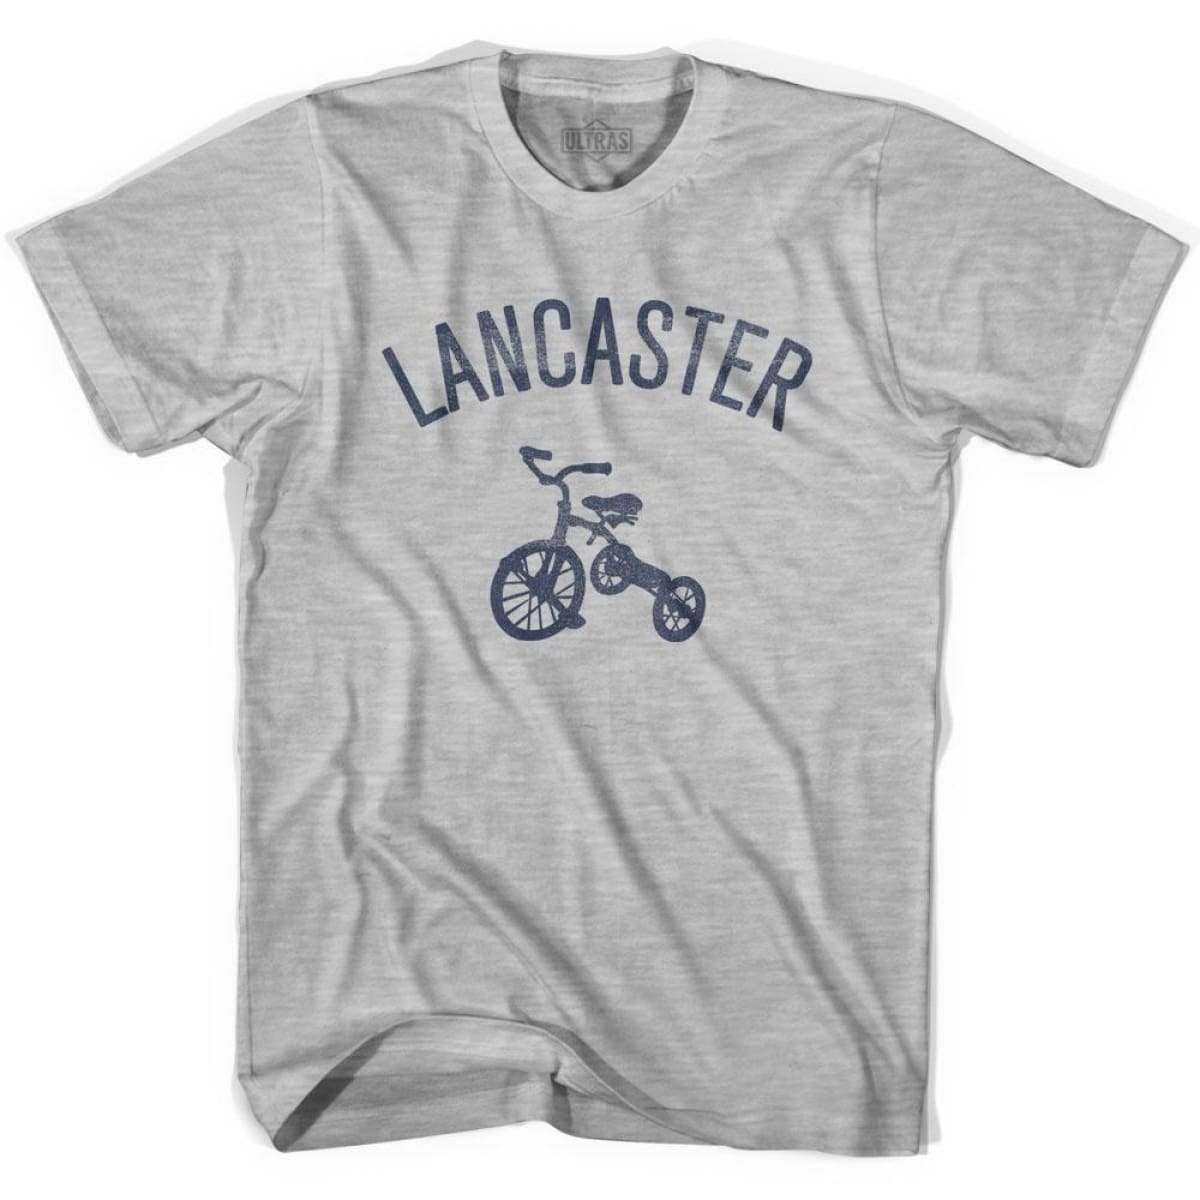 Lancaster City Tricycle Womens Cotton T-shirt - Tricycle City